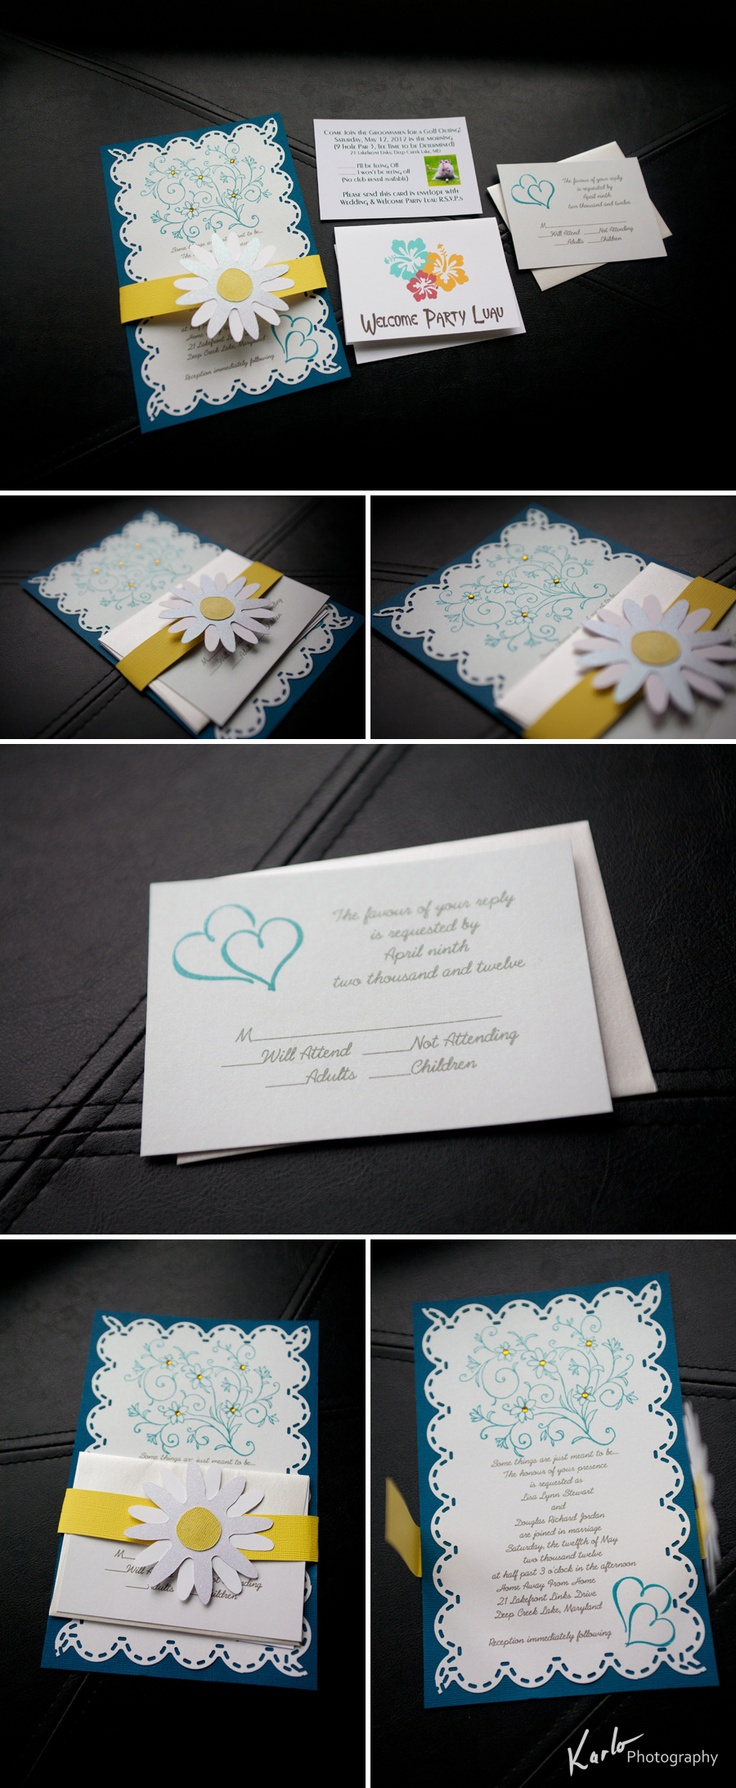 Check out this gorgeous wedding invitation I